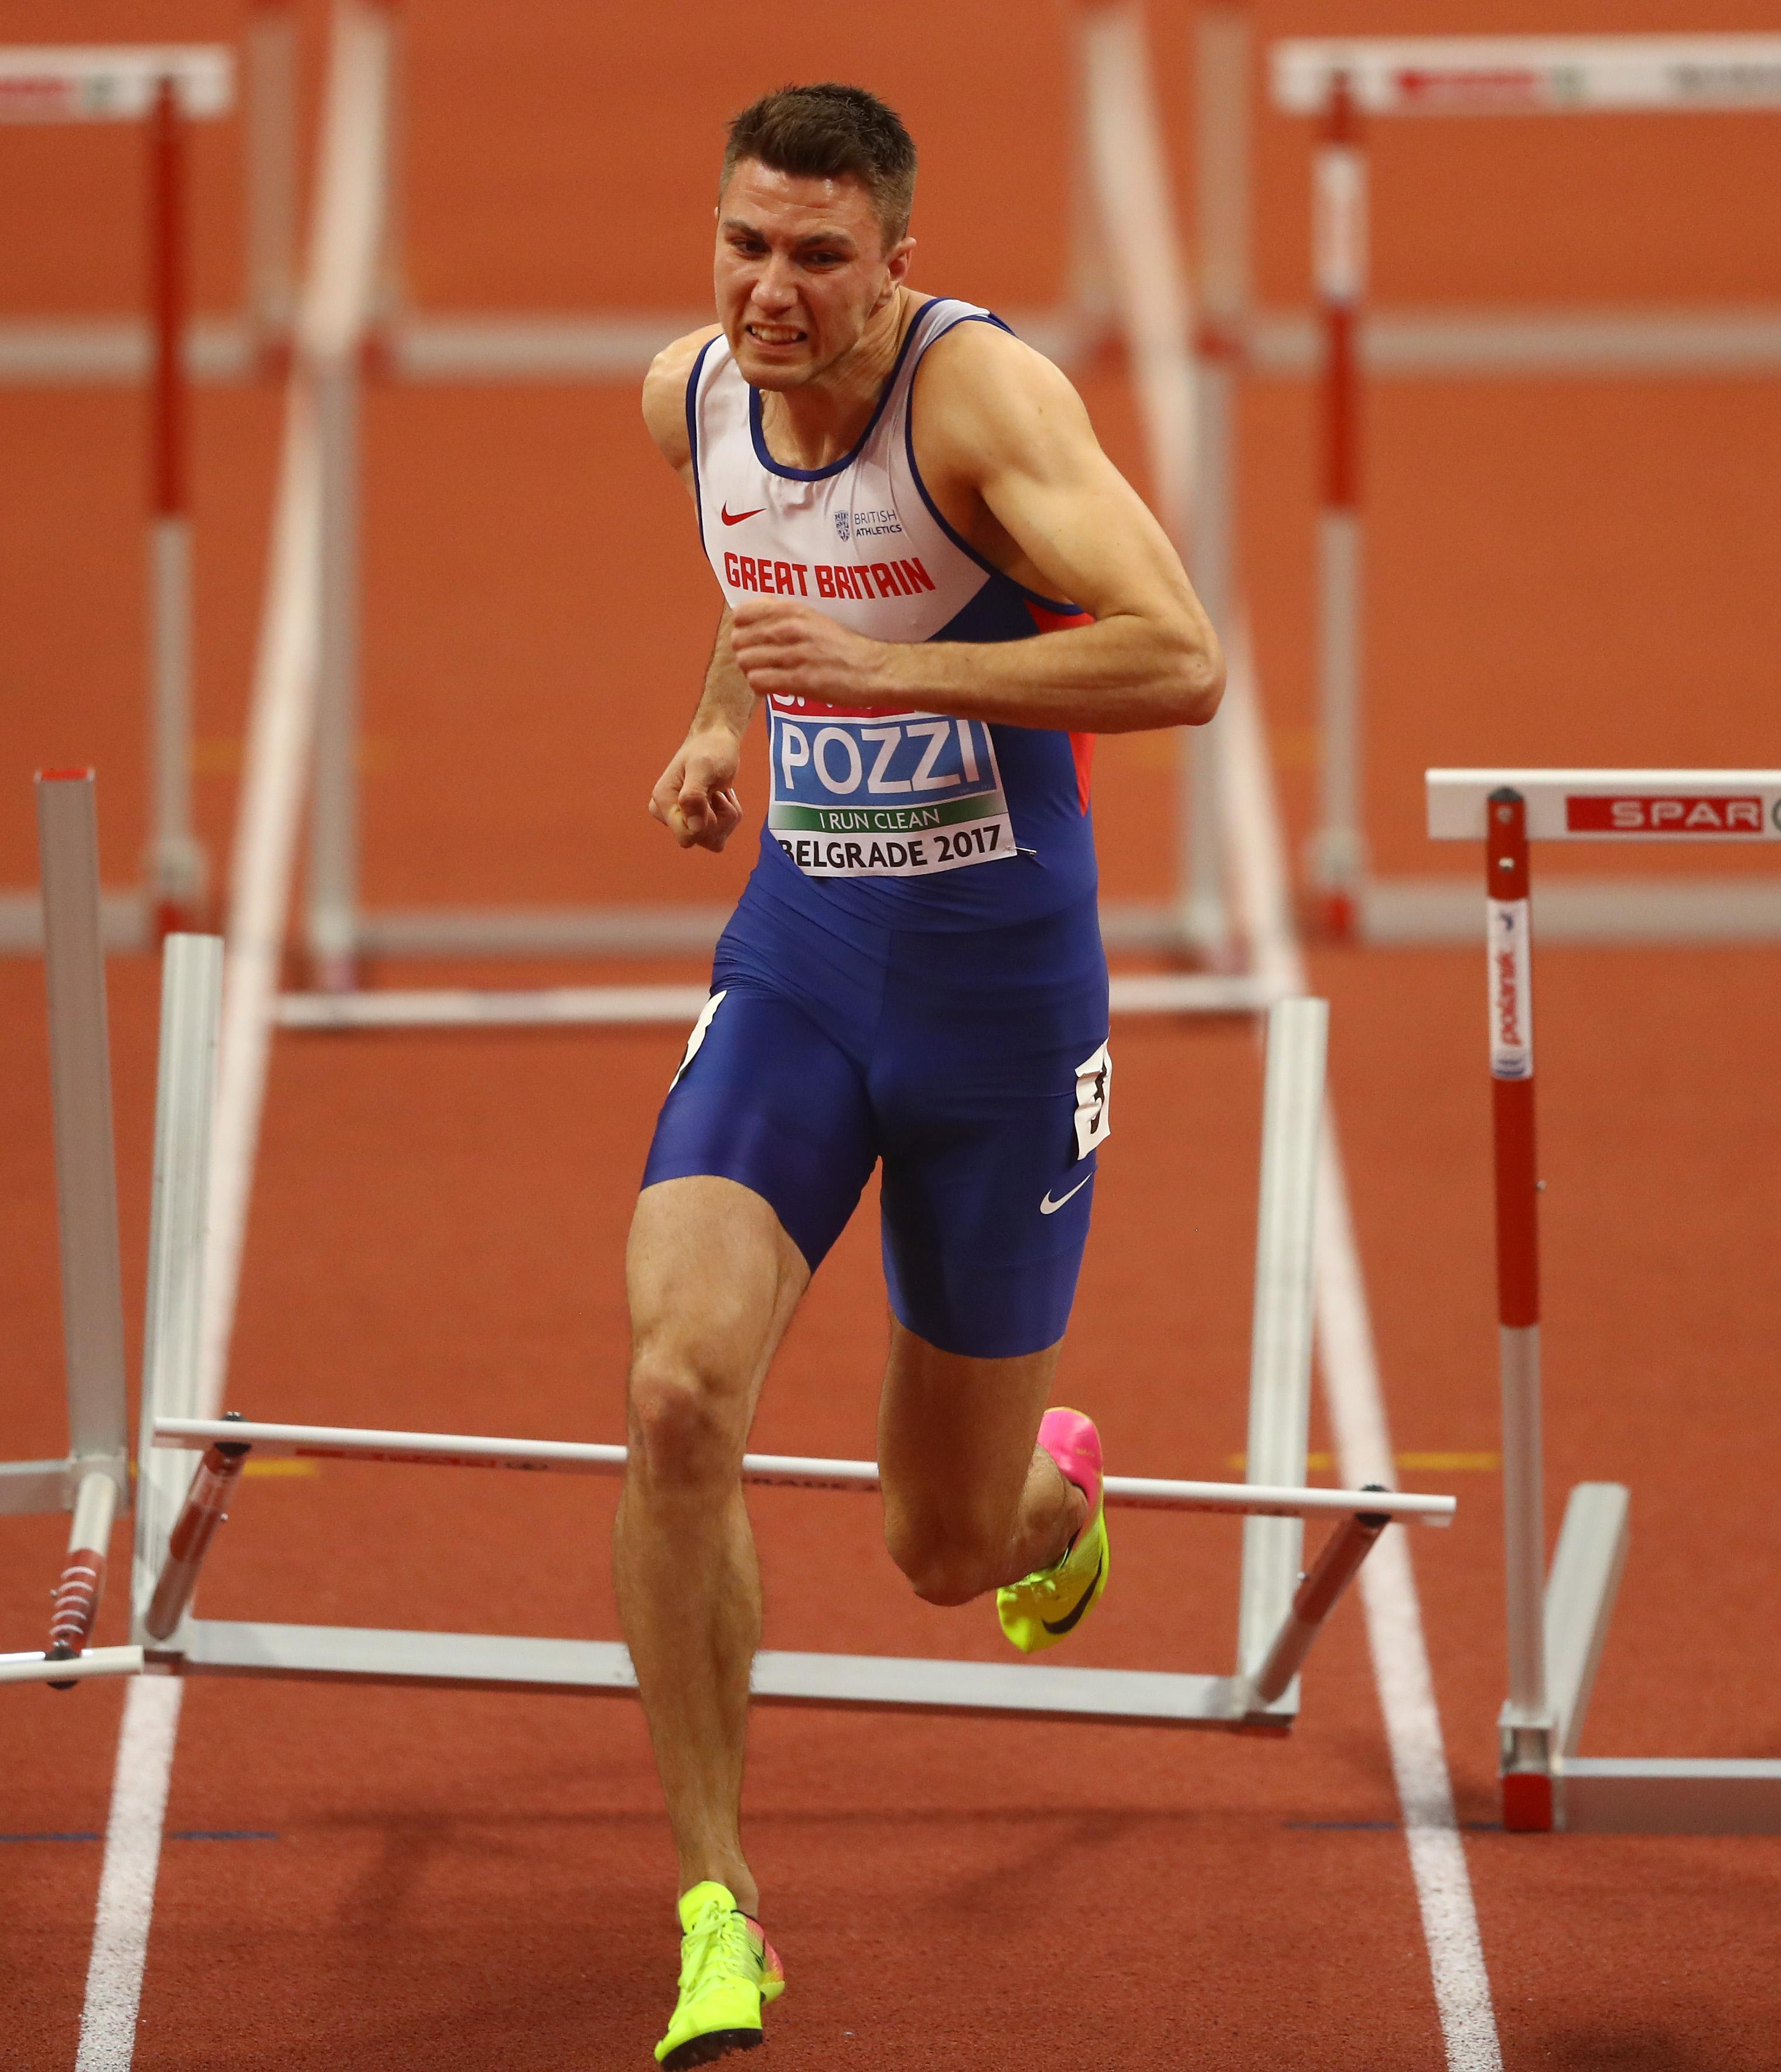 European indoor gold was a major boost to the hurdler